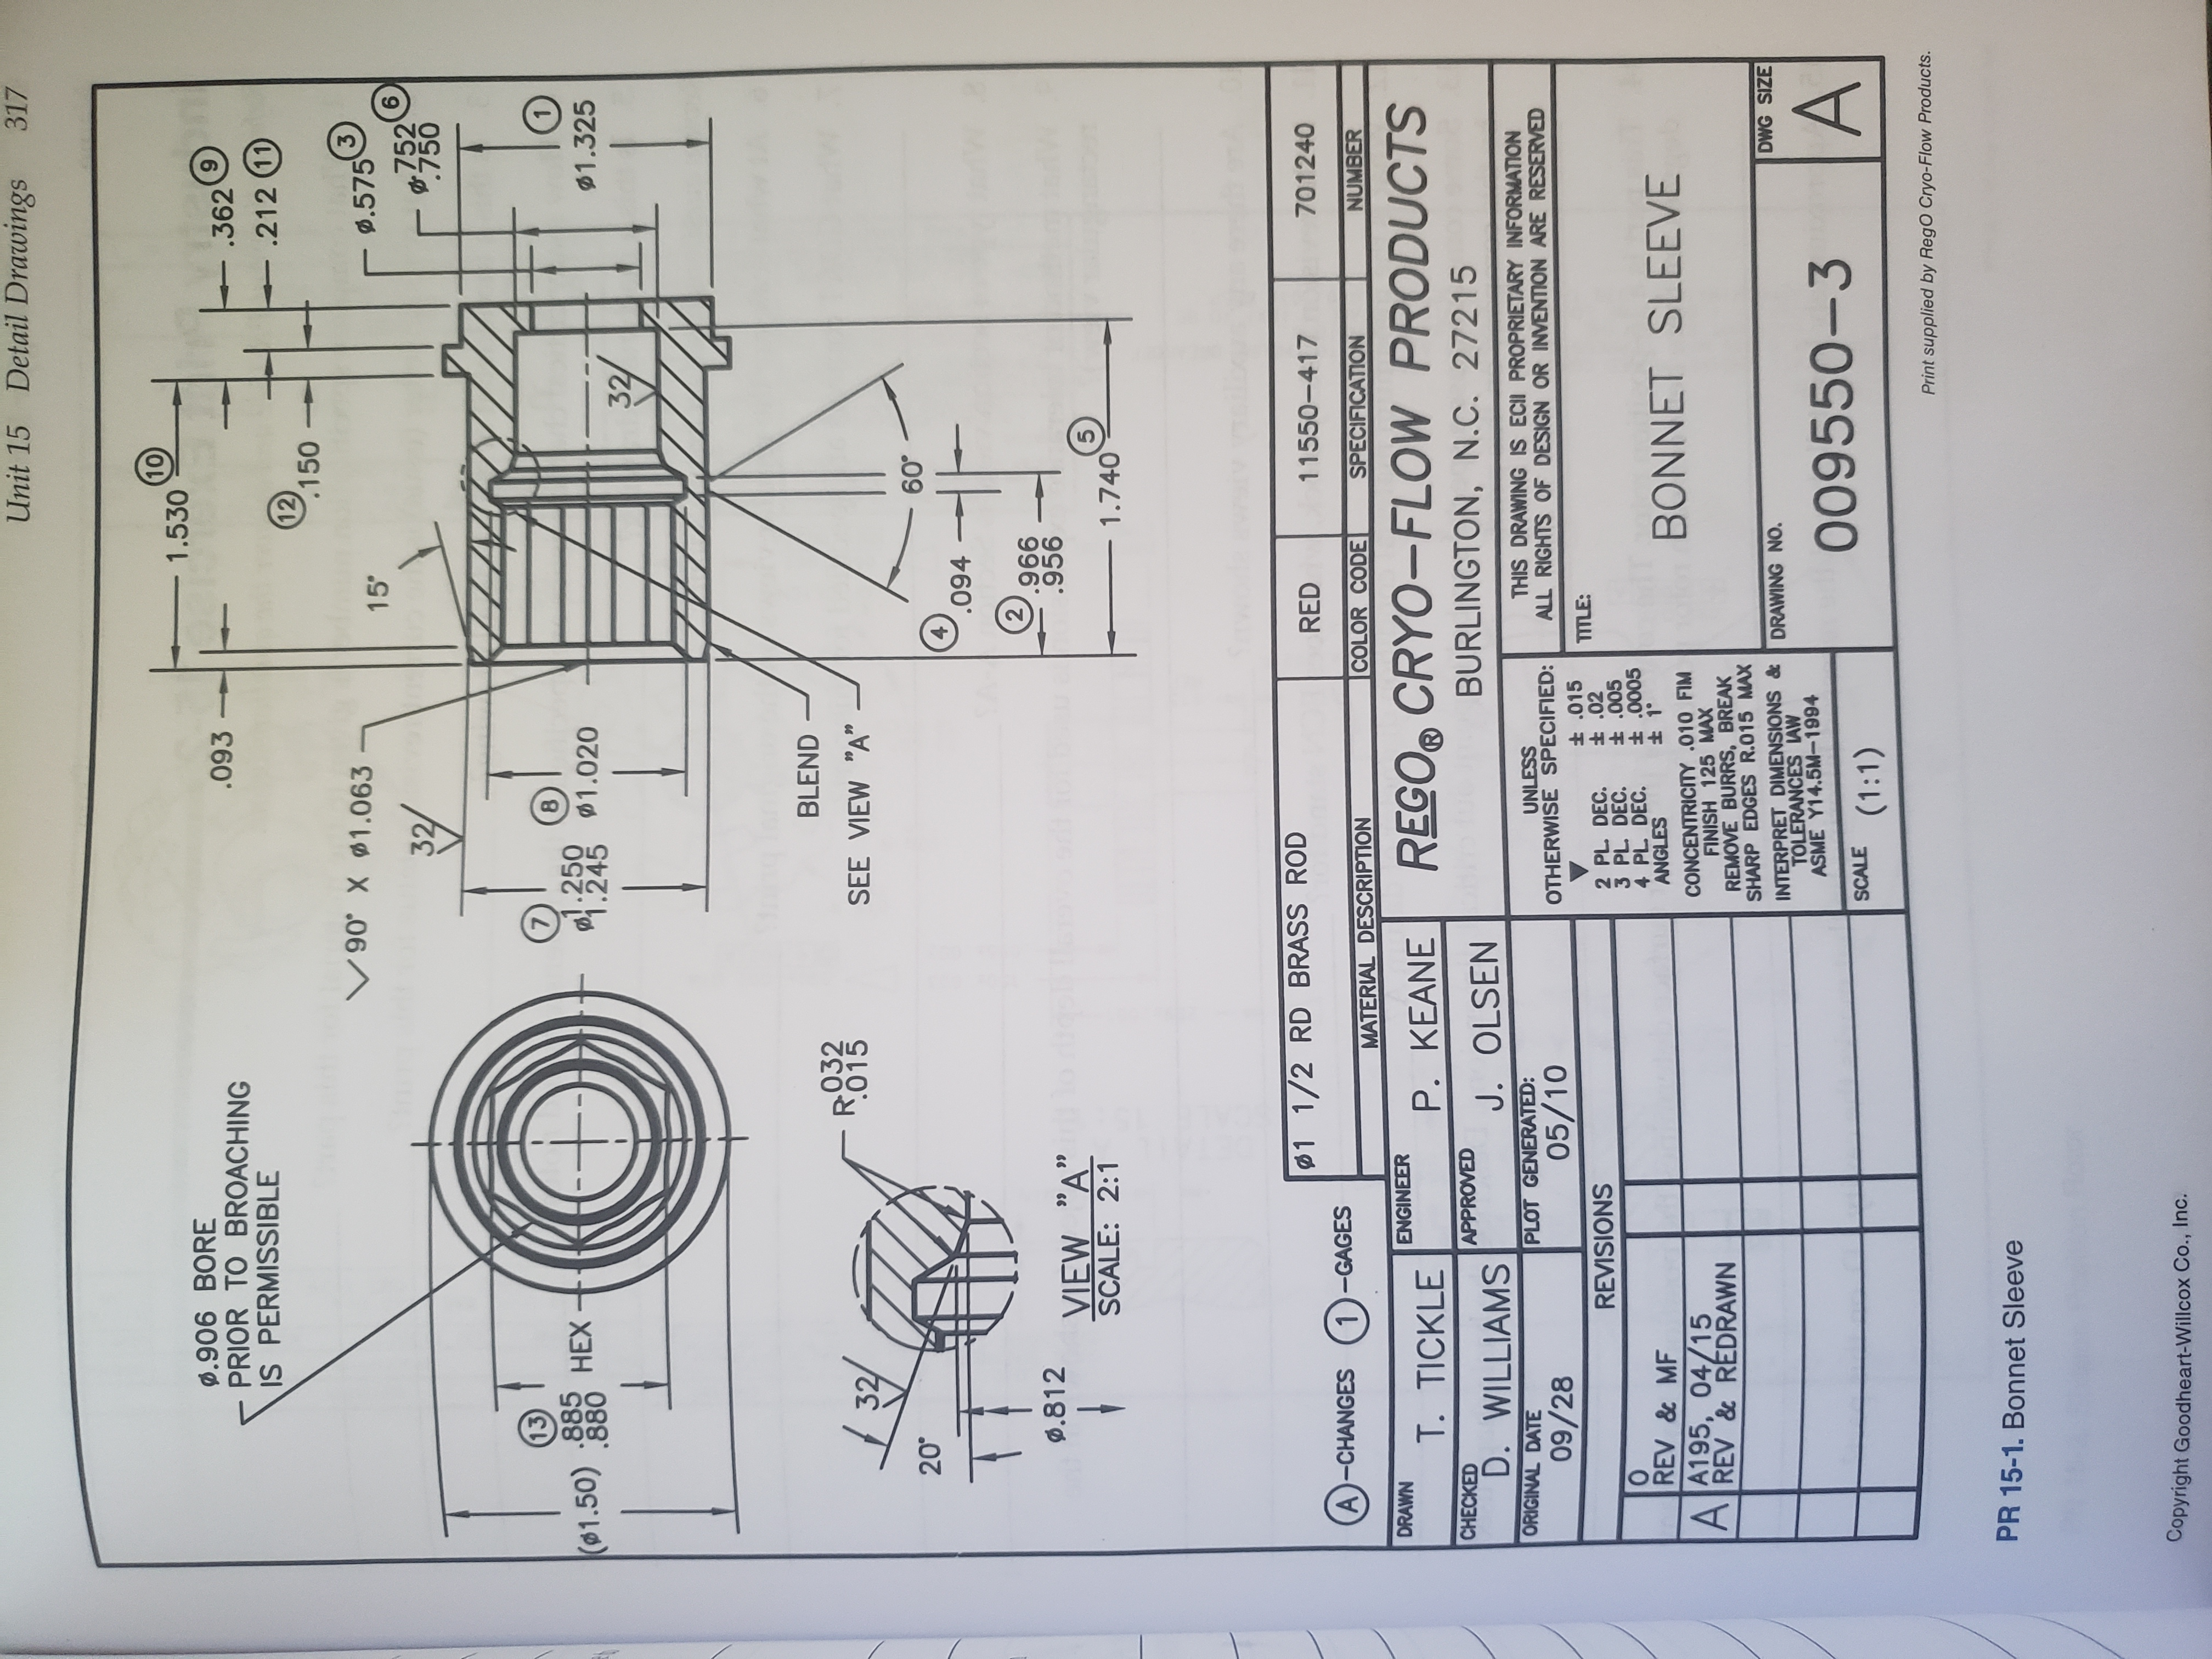 """Detail Drawings Unit 15 317 10 1.530 0.906 BORE PRIOR TO BROACHING IS PERMISSIBLE .093 .362 .212 (11 12 .150 90 X 1.063 3 .575 6 15' 32/ 752 .750 13) 7 8 .885 .880 1.250 1.245 НЕХ (01.50) 1.020 $1.325 32/ BLEND 032 015 SEE VIEW """"A"""" 20° 60° 4 .094 2 .966 .956 .812 dool Tla oooom VIEW """"A"""" SCALE: 2:1 99 5 1.740 1 1/2 RD BRASS ROD RED 11550-417 701240 A-CHANGES 1-GAGES COLOR CODE NUMBER MATERIAL DESCRIPTION SPECIFICATION DRAWN ENGINEER REGO® CRYO-FLOW PRODUCTS T. TICKLE P. KEANE CHECKED APPROVED BURLINGTON, N.C. 27215 D. WILLIAMS J. OLSEN ORIGINAL DATE PLOT GENERATED: THIS DRAWING IS ECII PROPRIETARY INFORMATION ALL RIGHTS OF DESIGN OR INVENTION ARE RESERVED UNLESS OTHERWISE SPECIFIED: 05/10 09/28 t 015 t 02 t .005 t .0005 t 1° TITLE: REVISIONS 2 PL. DEC. 3 PL DEC. 4 PL DEC. ANGLES REV & MF BONNET SLEEVE A195, 04/15 REV&REDRAWN A CONCENTRICITY .010 FIM FINISH 125 MAX REMOVE BURRS, BREAK SHARP EDGES R.015 MAX INTERPRET DIMENSIONS & TOLERANCES AW ASME Y14.5M-1994 DWG SIZE DRAWING NO A 009550-3 SCALE (1:1) Print supplied by RegO Cryo-Flow Products. PR 15-1. Bonnet Sleeve Copyright Goodheart-Willcox Co., Inc."""